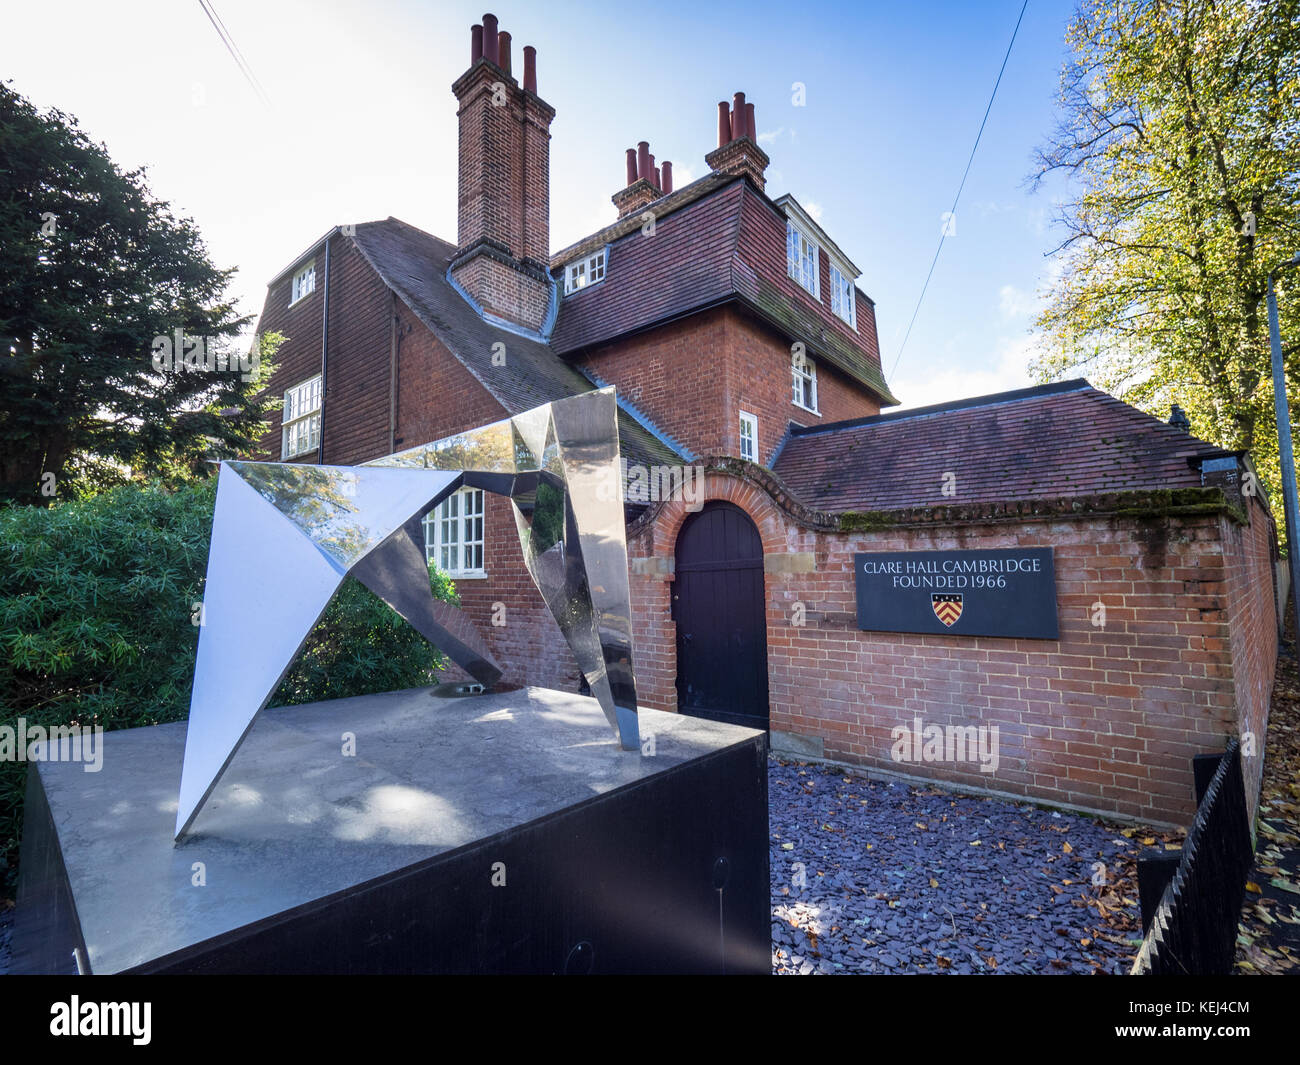 Clare Hall College Cambridge University Founded In 1966 Clare Stock Photo 163897124 Alamy